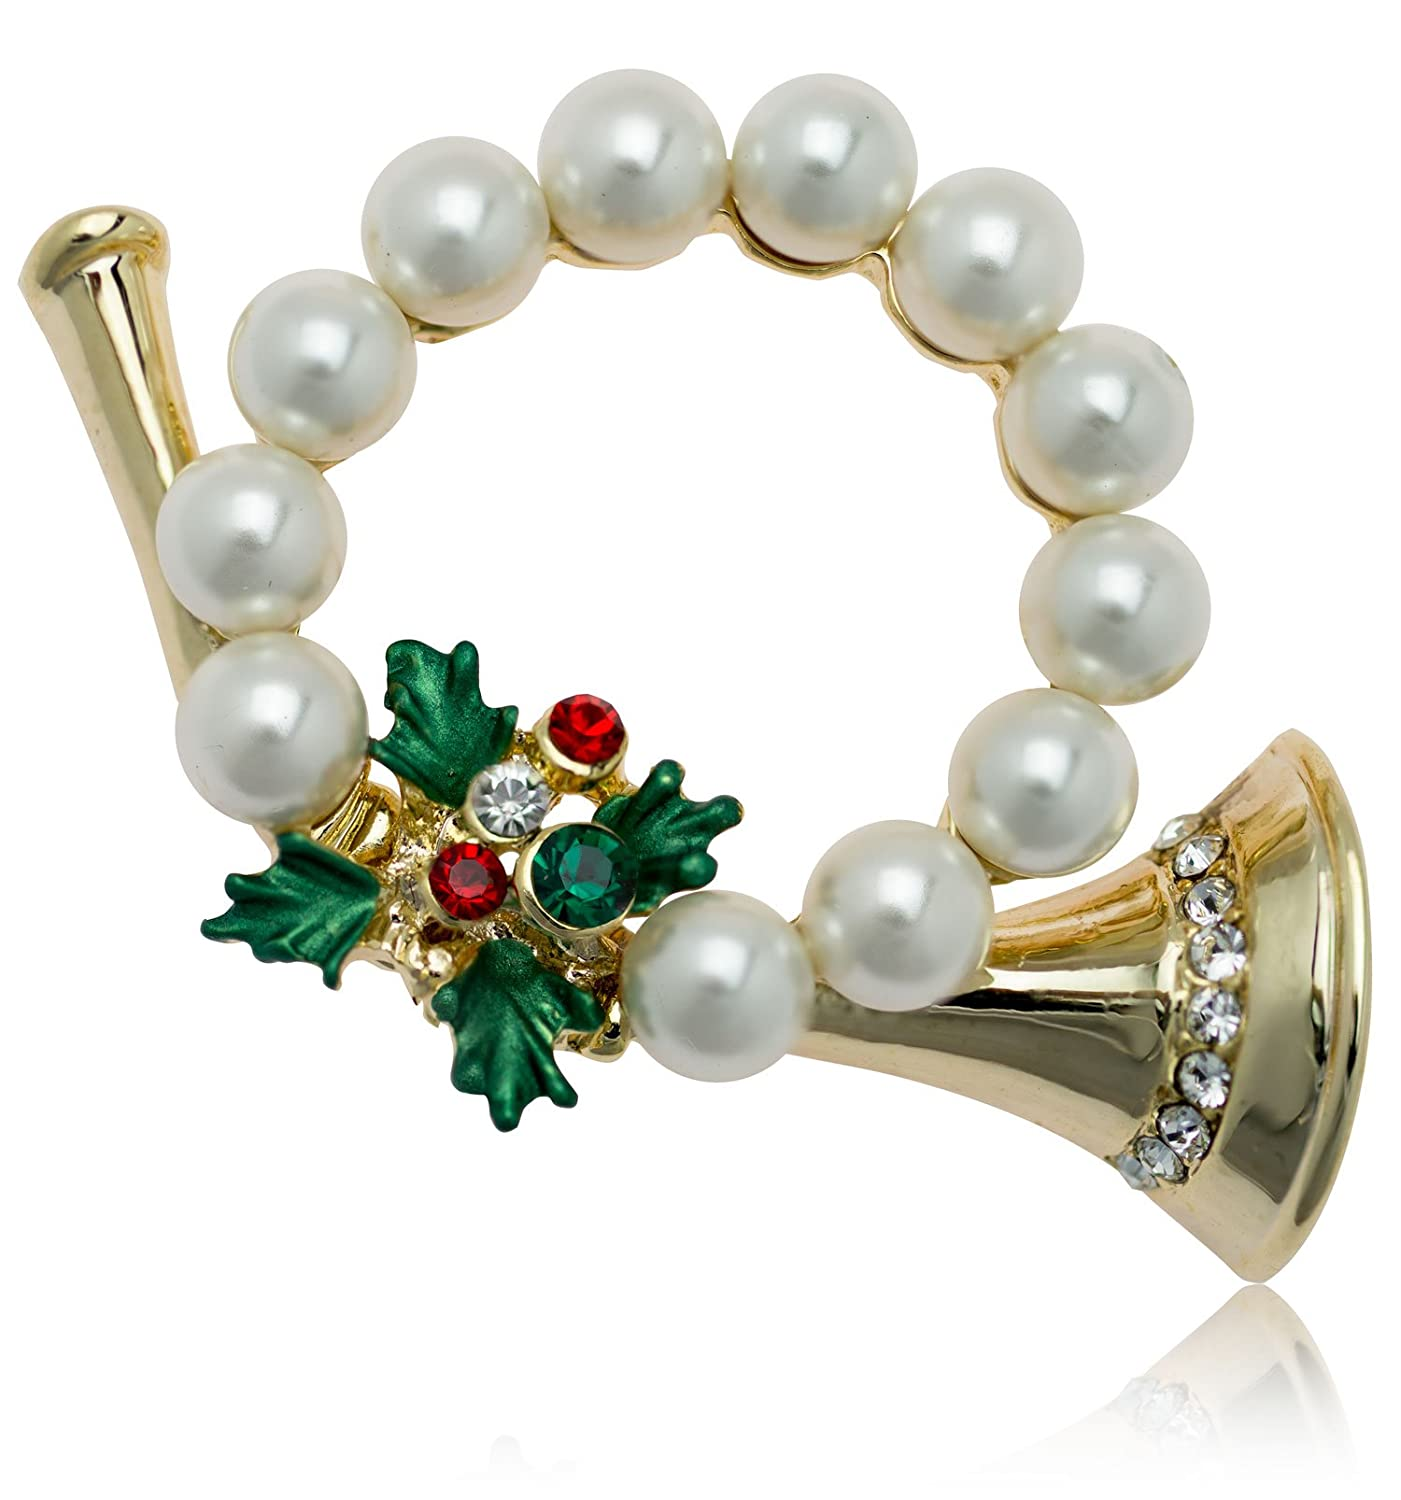 Akianna Swarovski Element Crystals and Simulated Pearls Christmas Horn Wreath Brooch